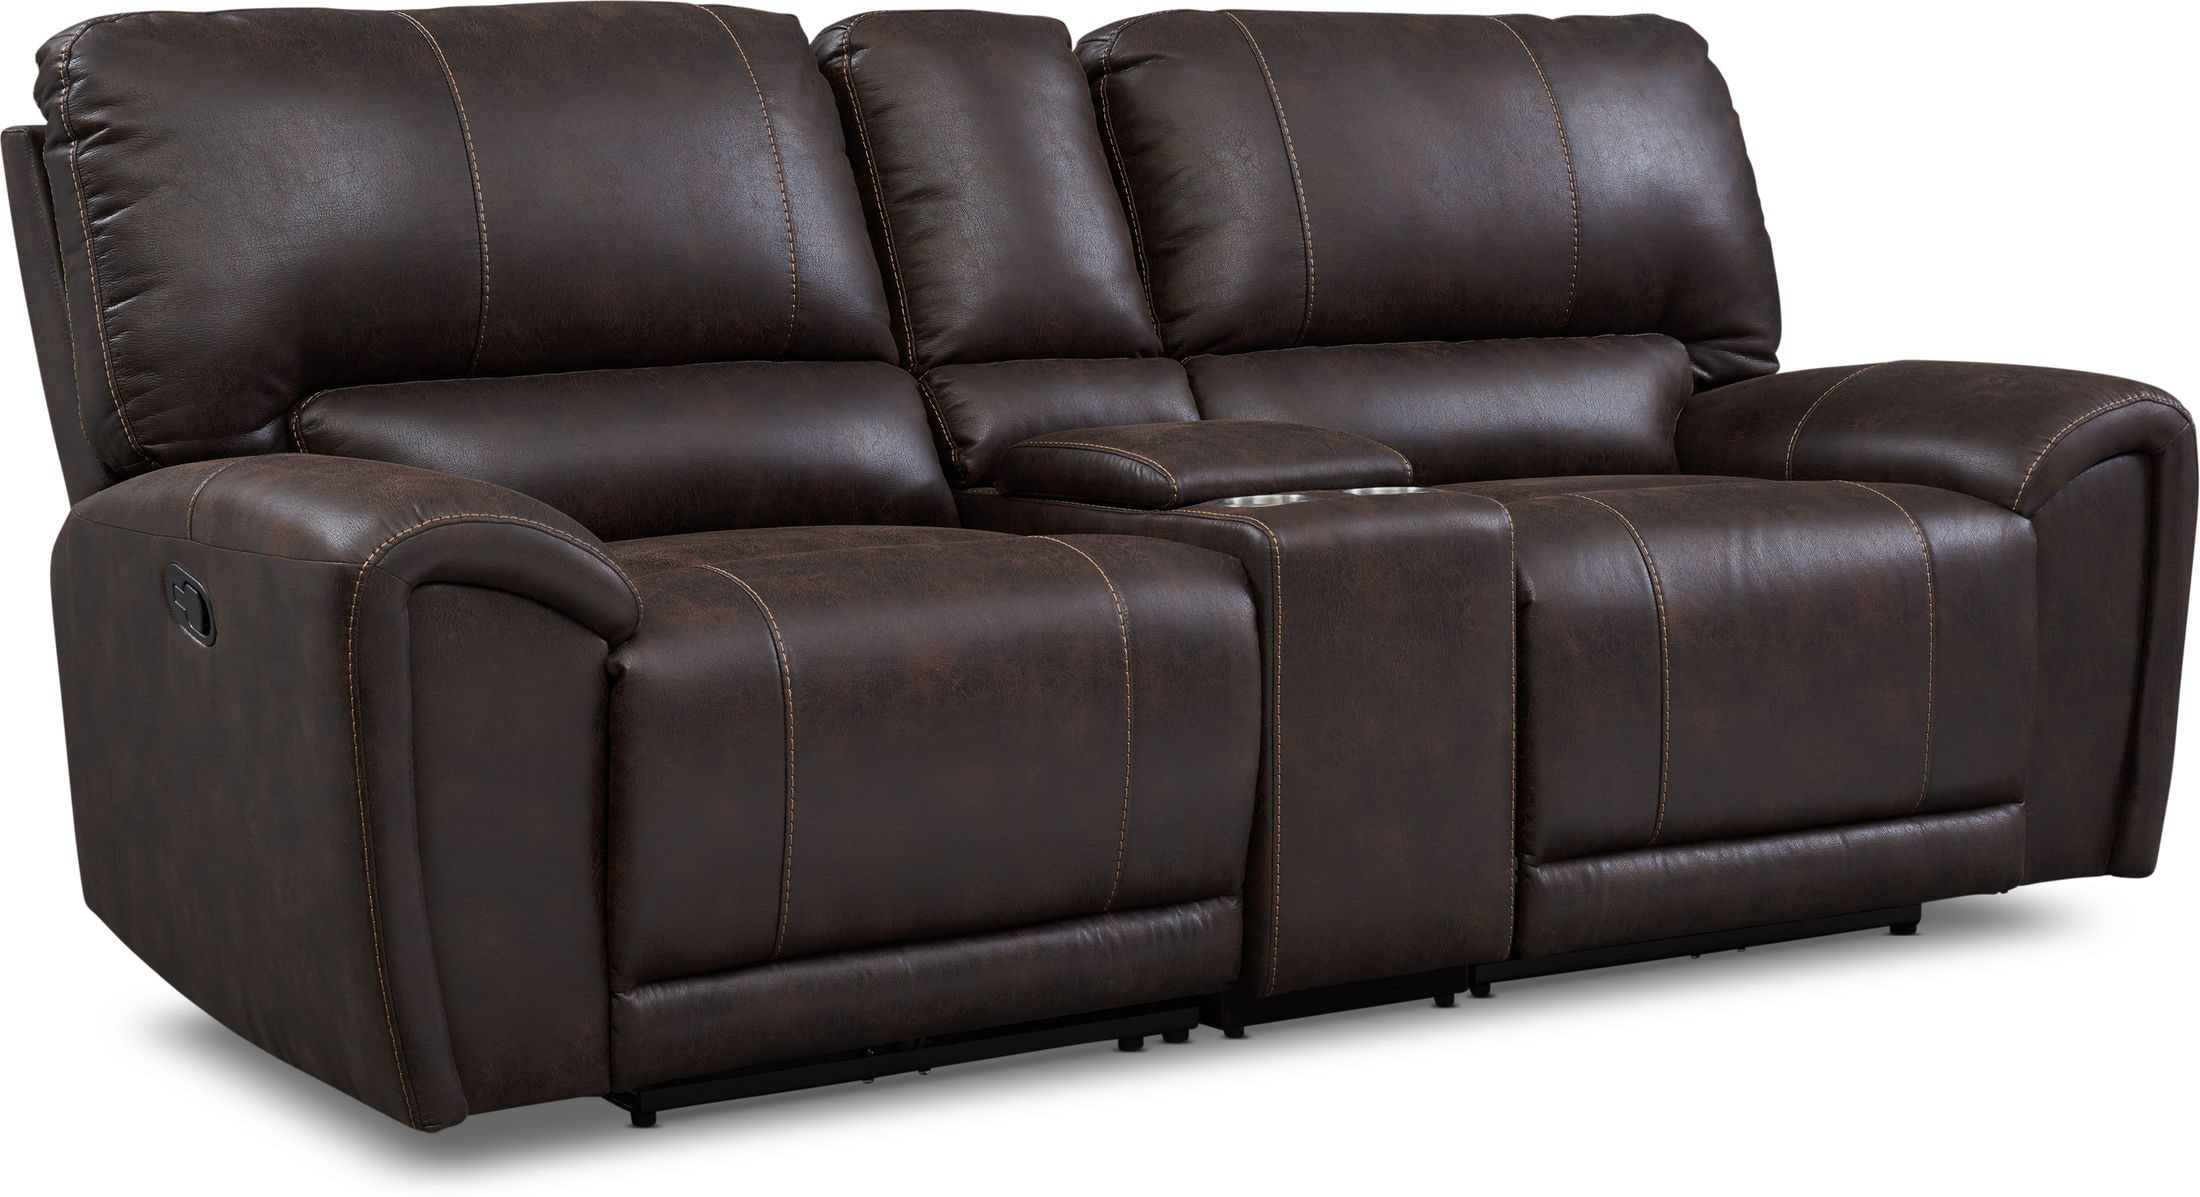 Living Room Furniture - Gallant 3-Piece Manual Reclining Sofa with Console